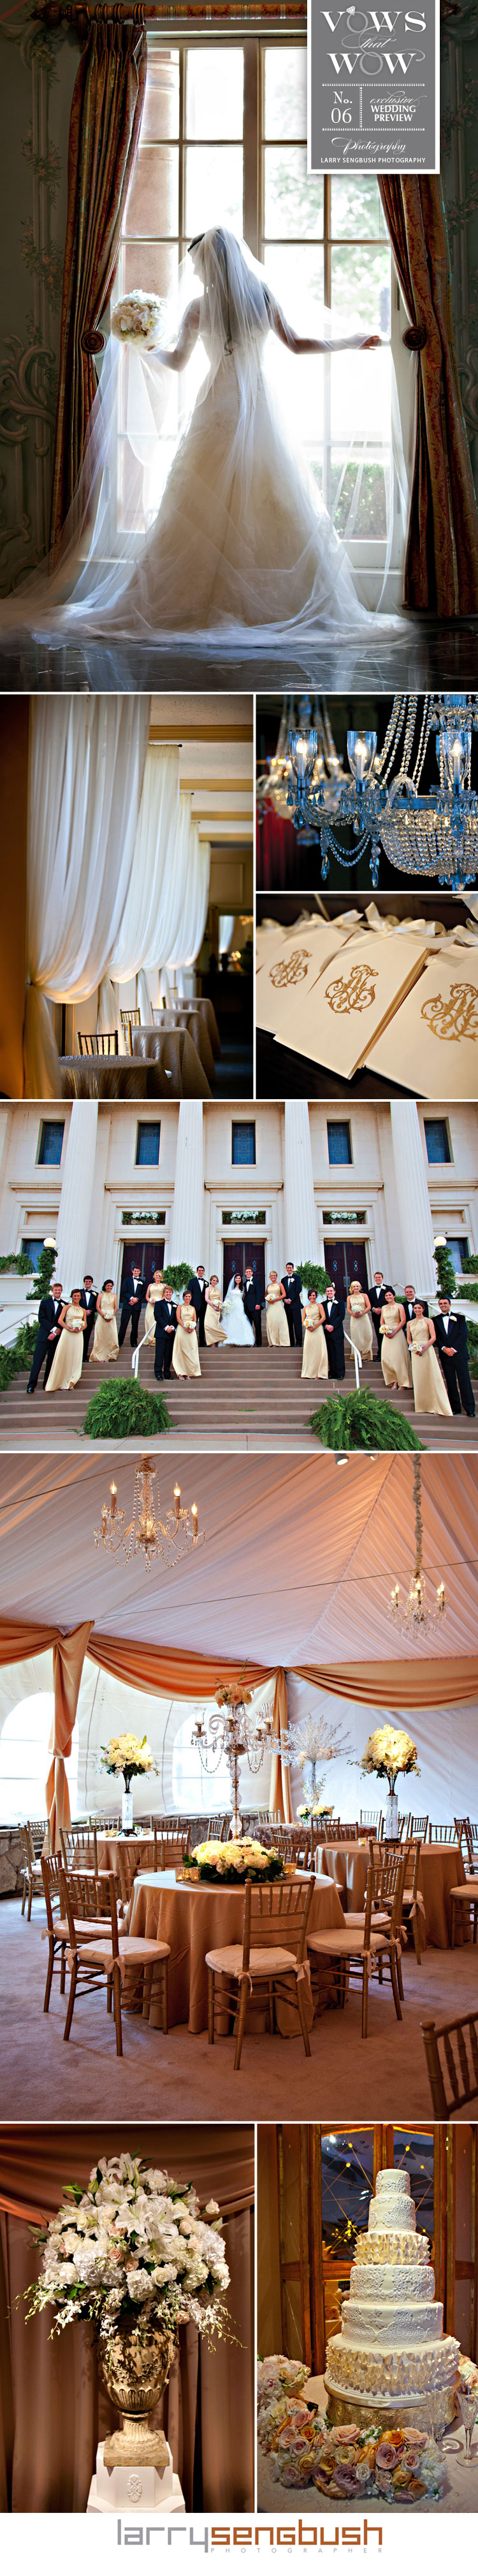 Texas wedding photographer Larry Sengbush Photographer